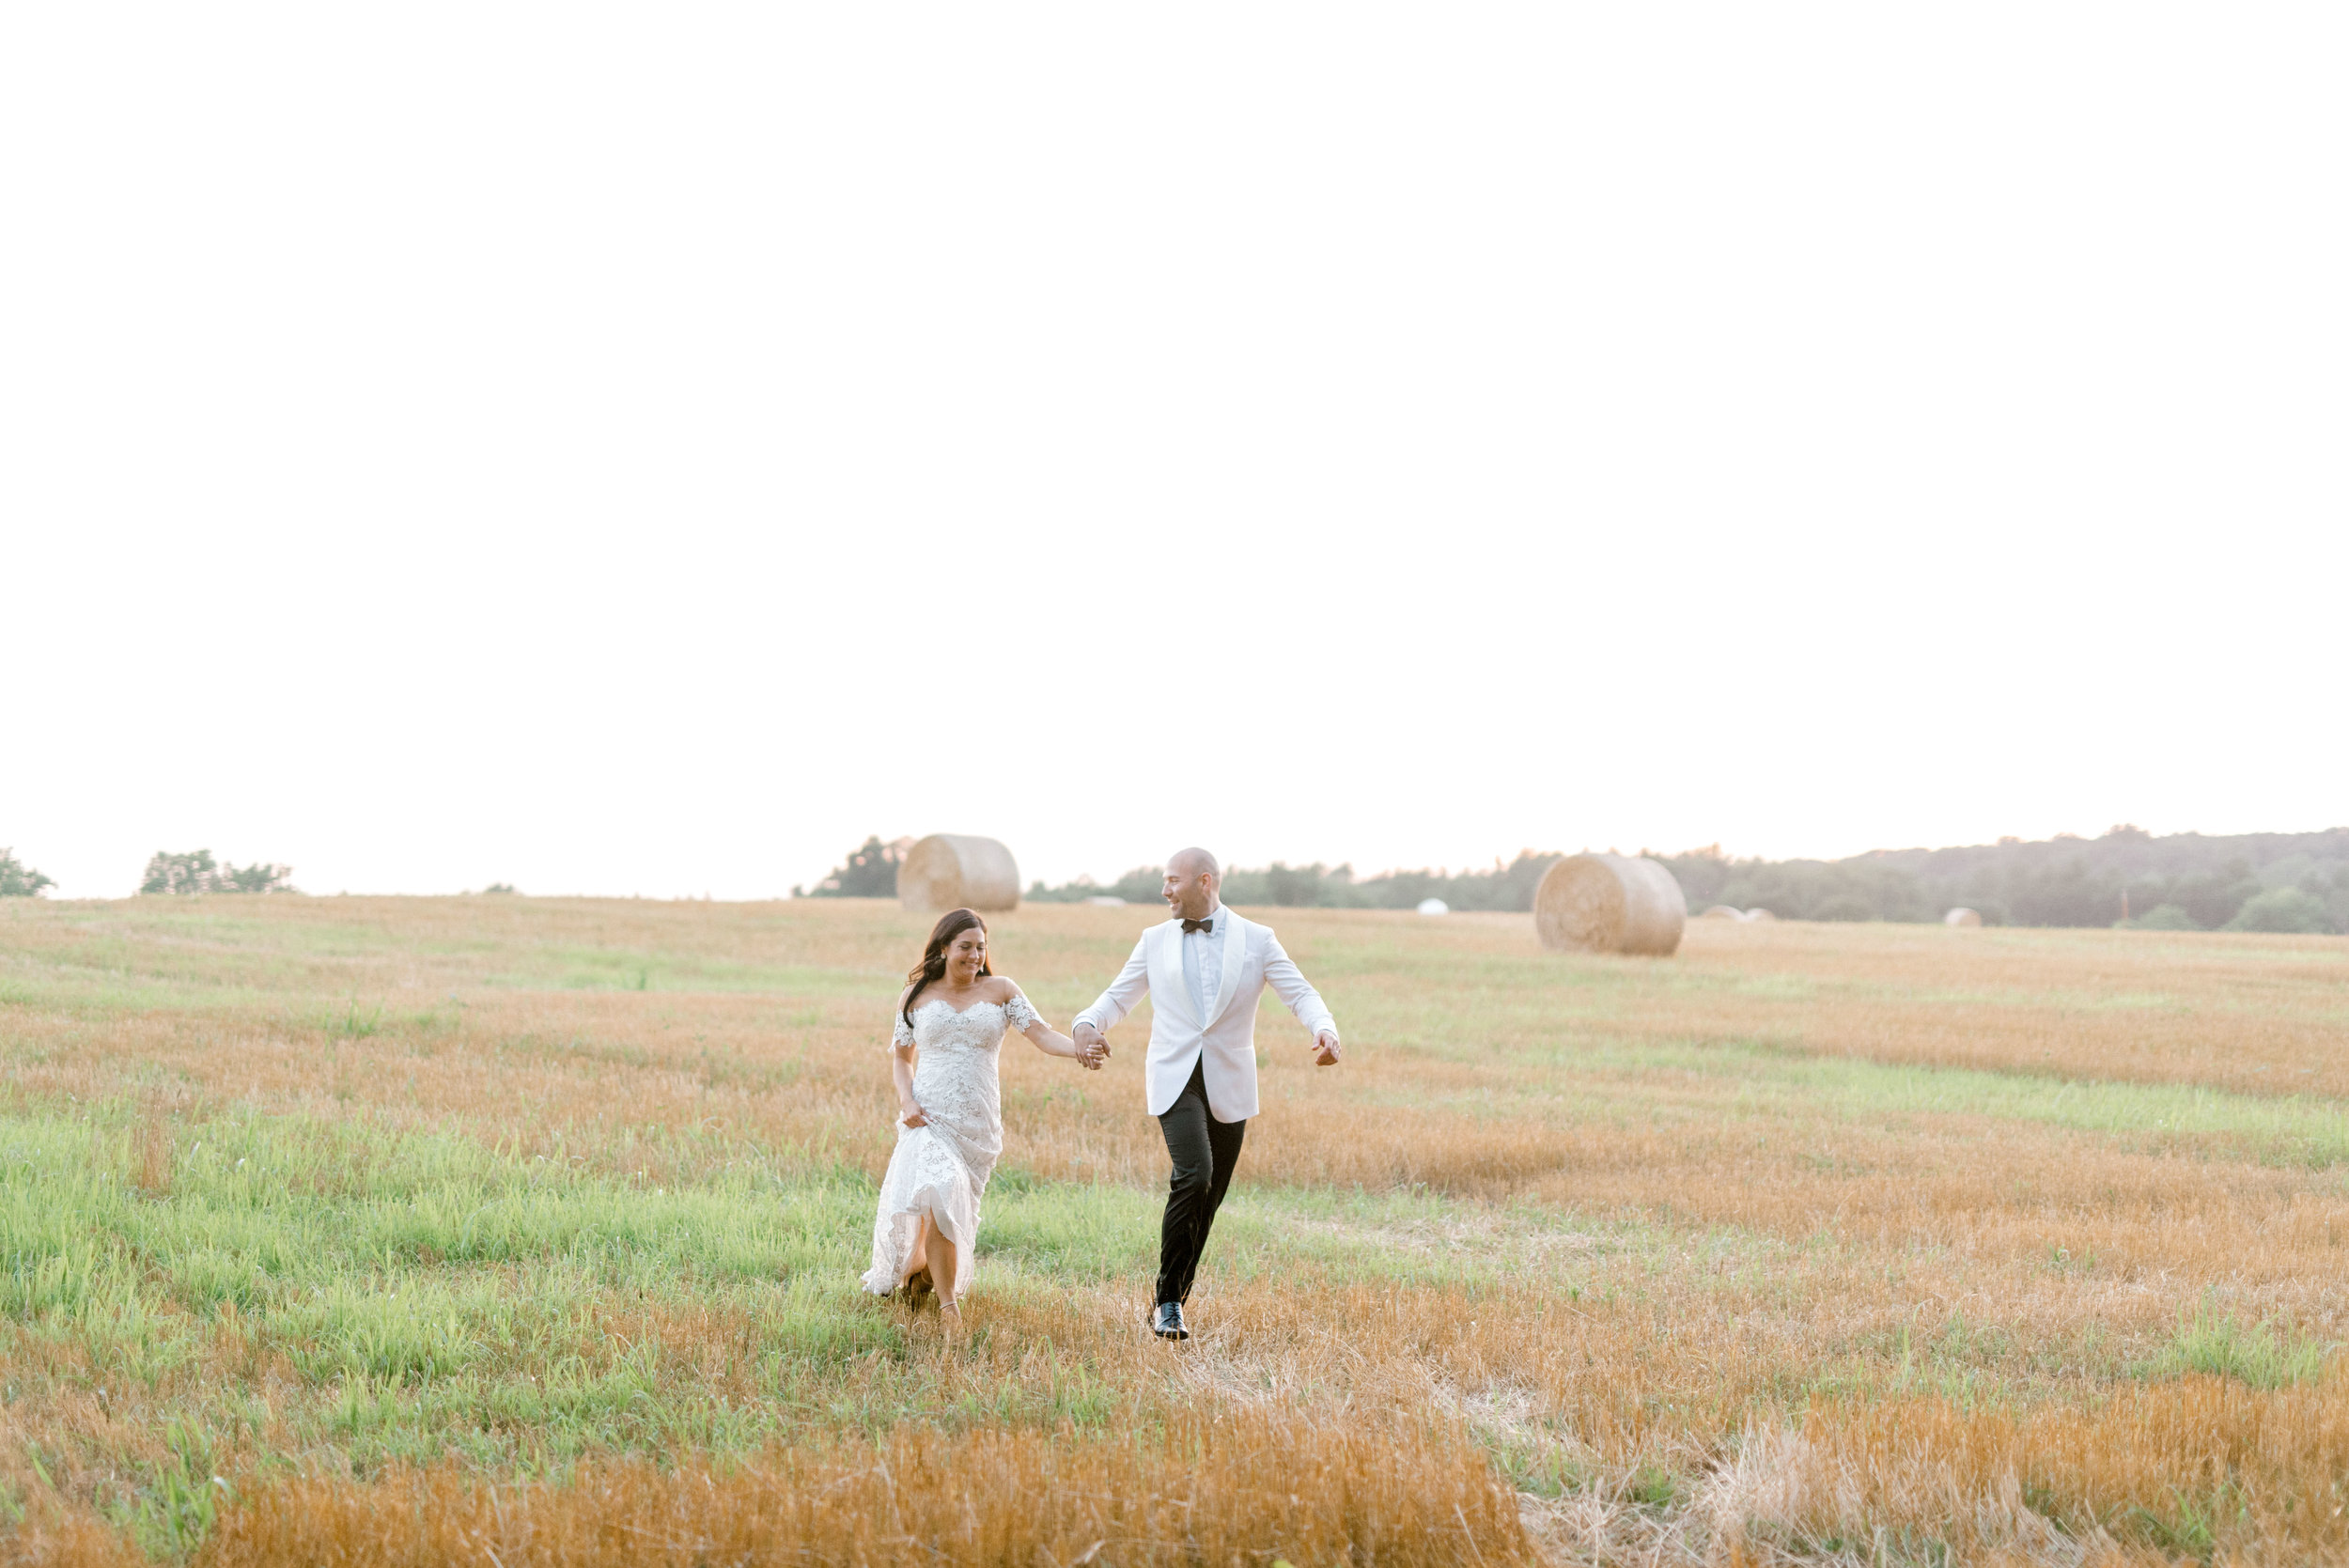 Running through a wheat field dressed to the nines on your wedding day is as romantic as it gets.